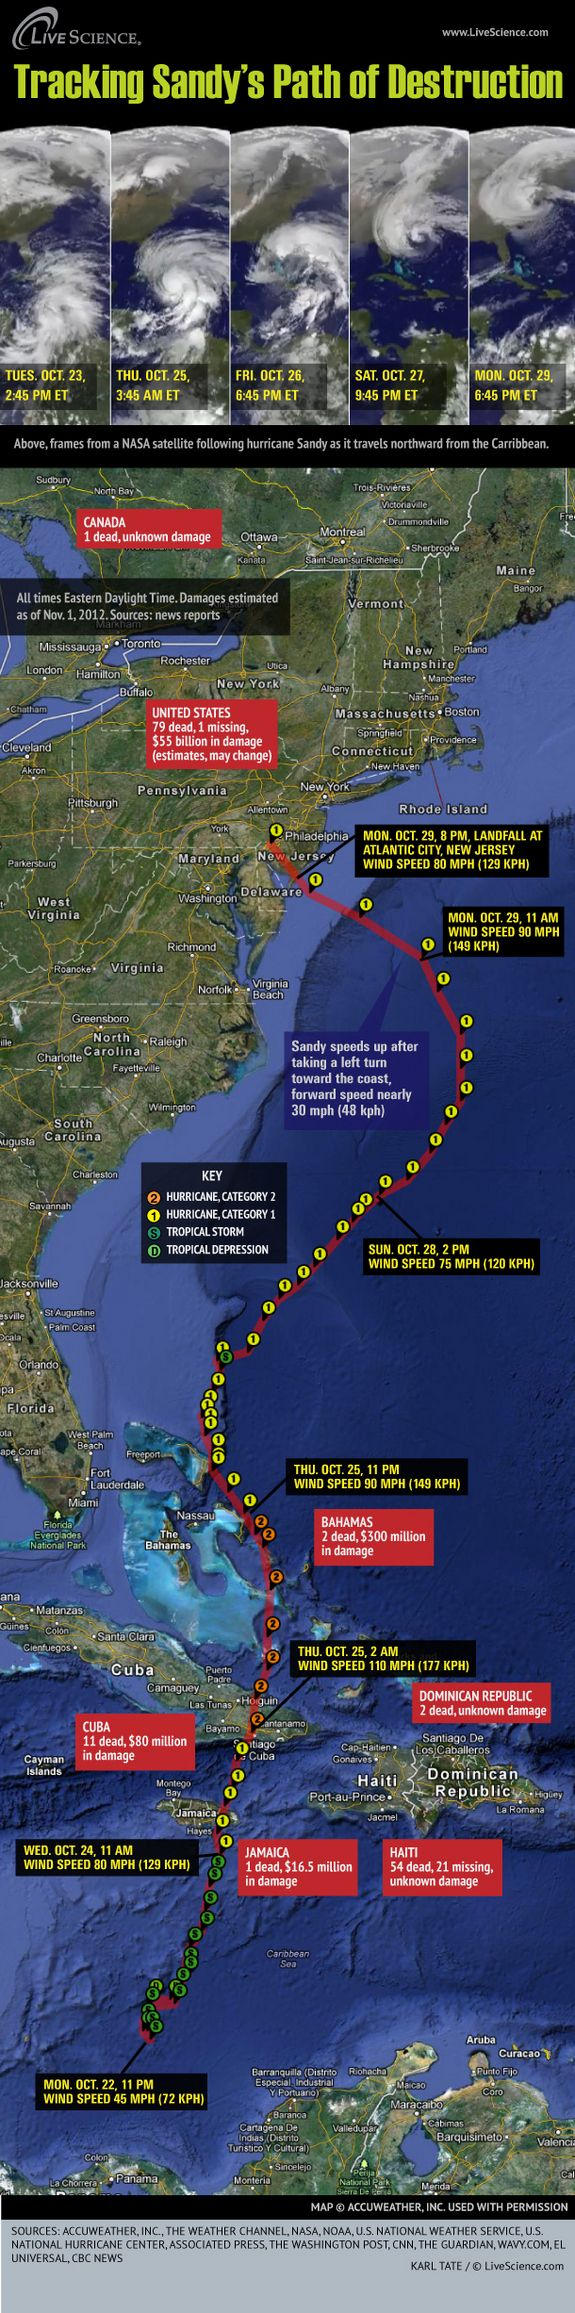 Follow the path of hurricane Sandy as it casuses more than 150 deaths and billions of dollars in damages.